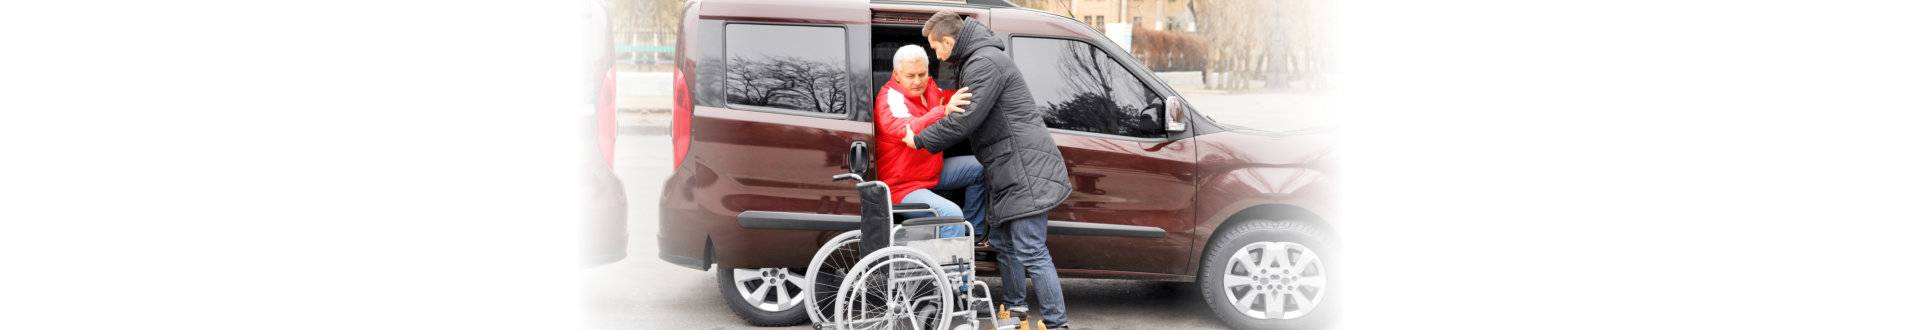 man helping senior man get off the car